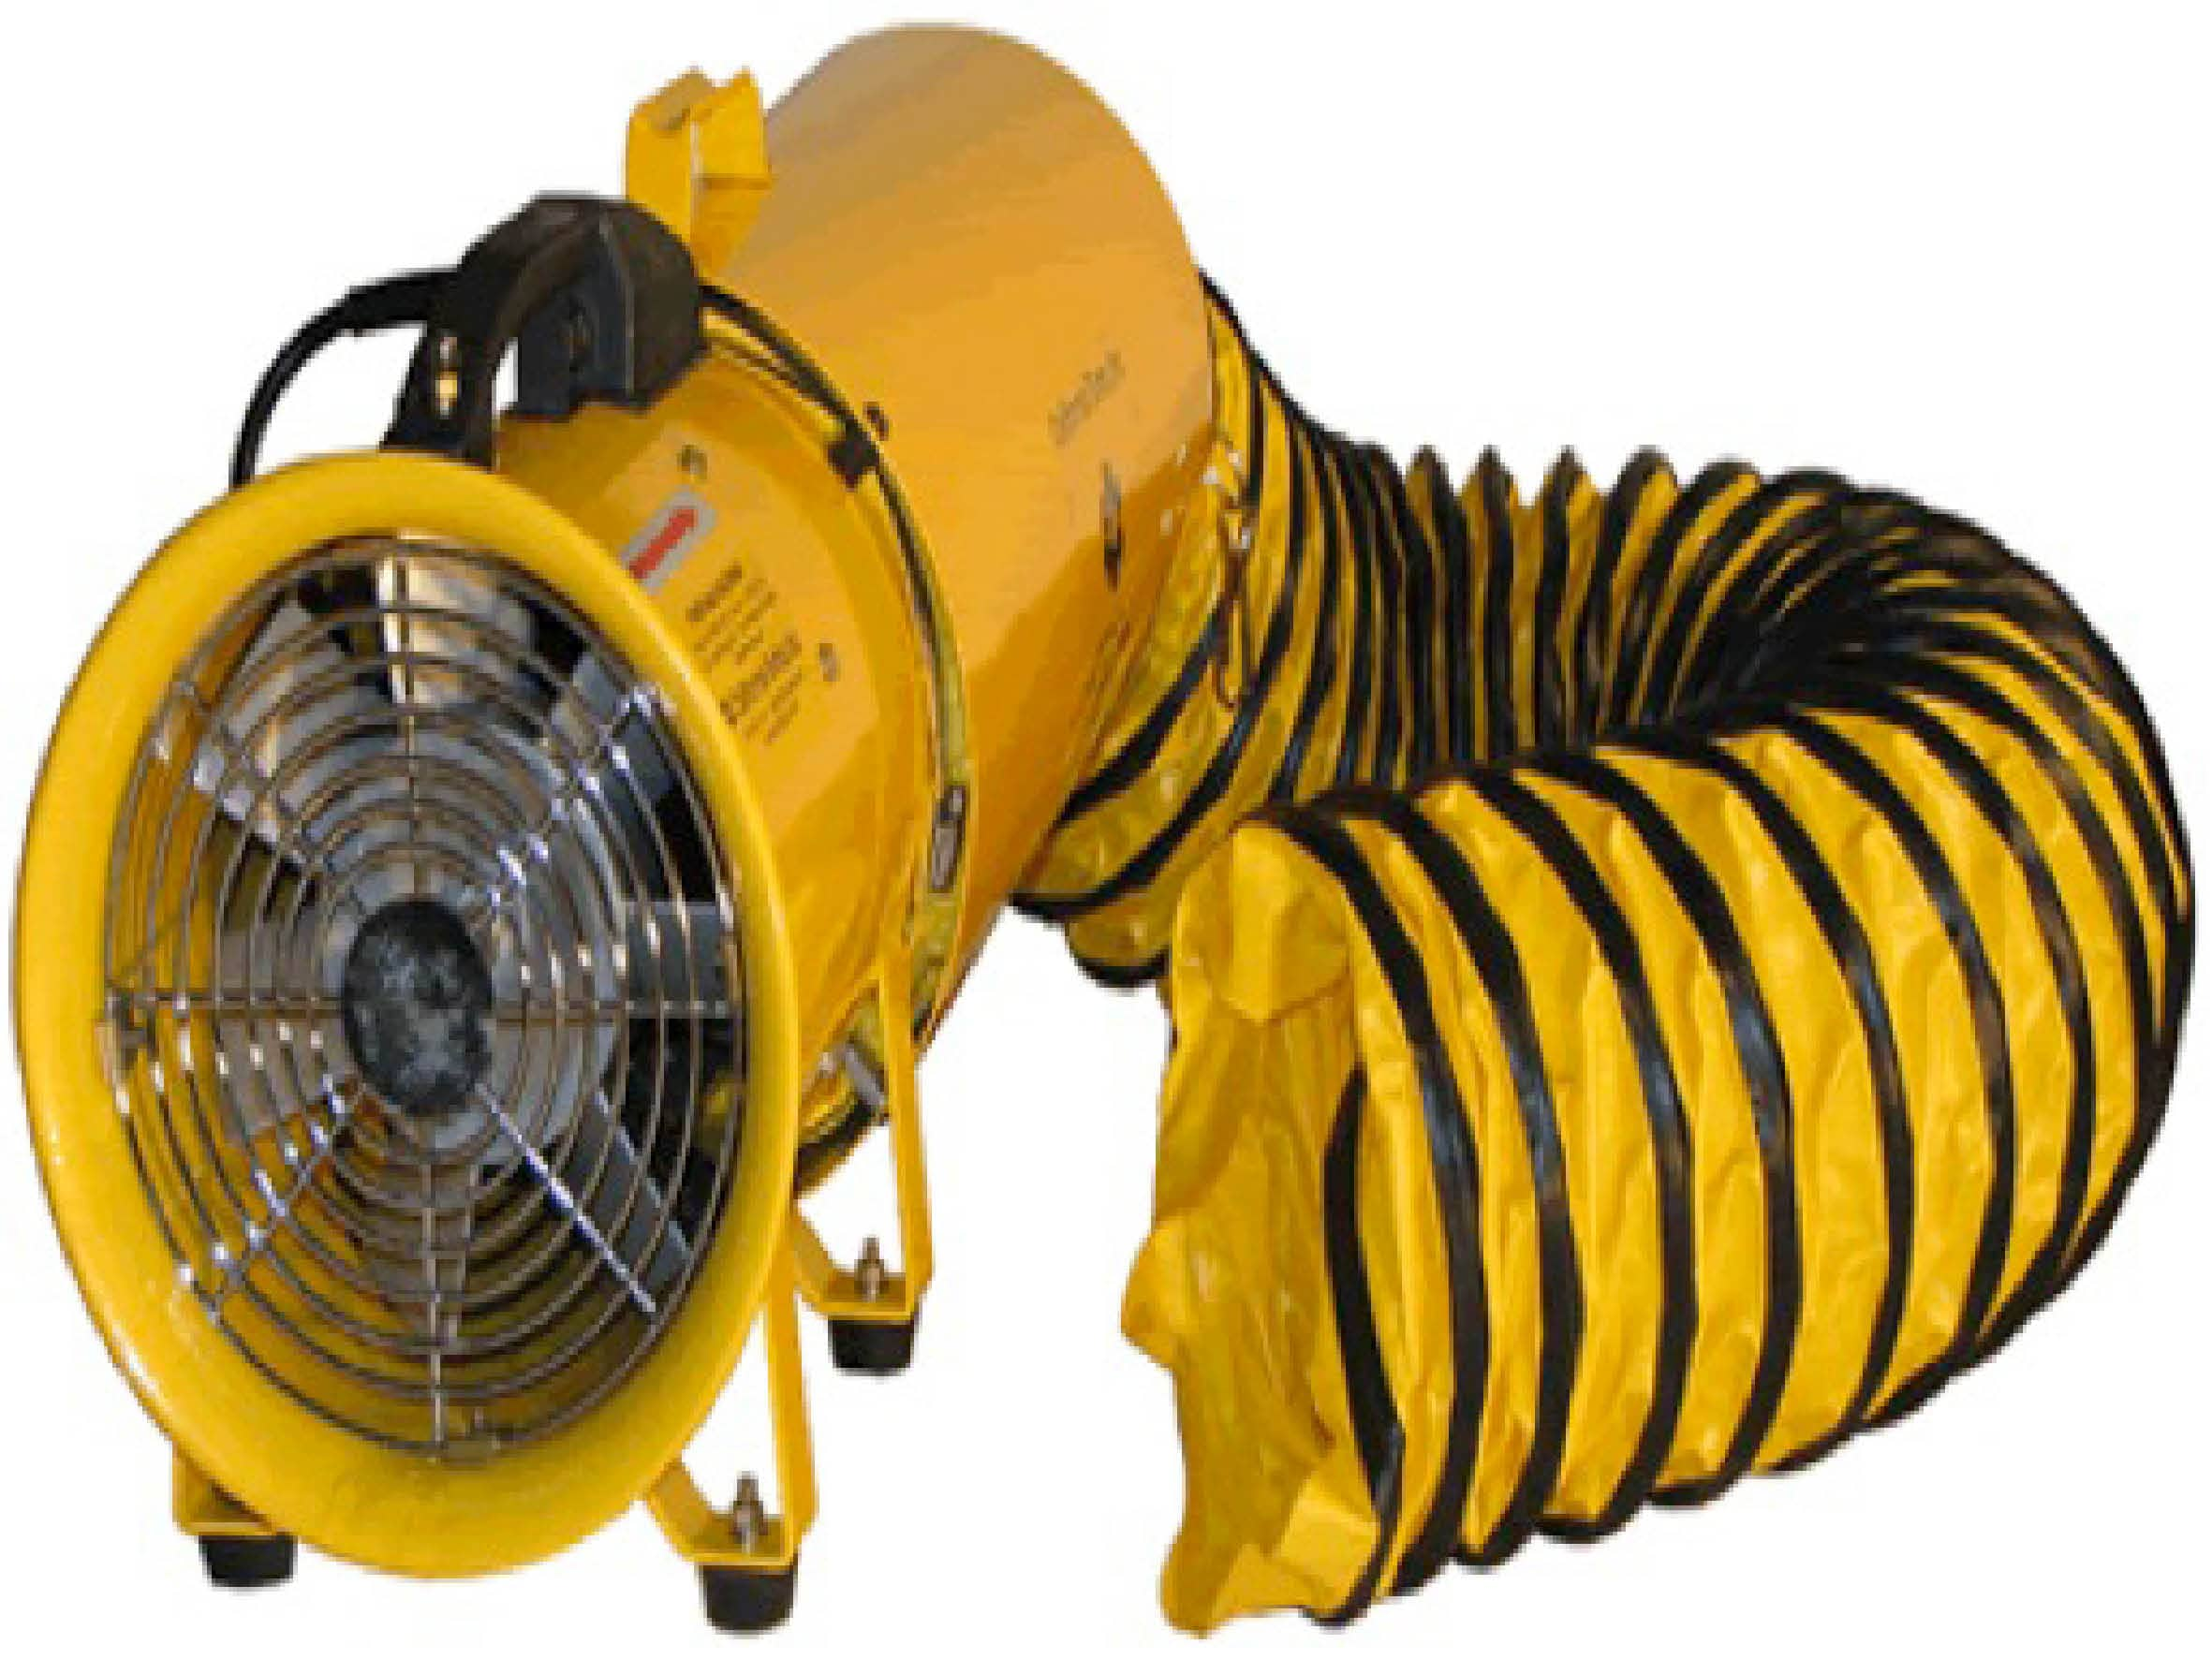 Confined Space Blowers And Fans : Additional services umoya vohe solutions